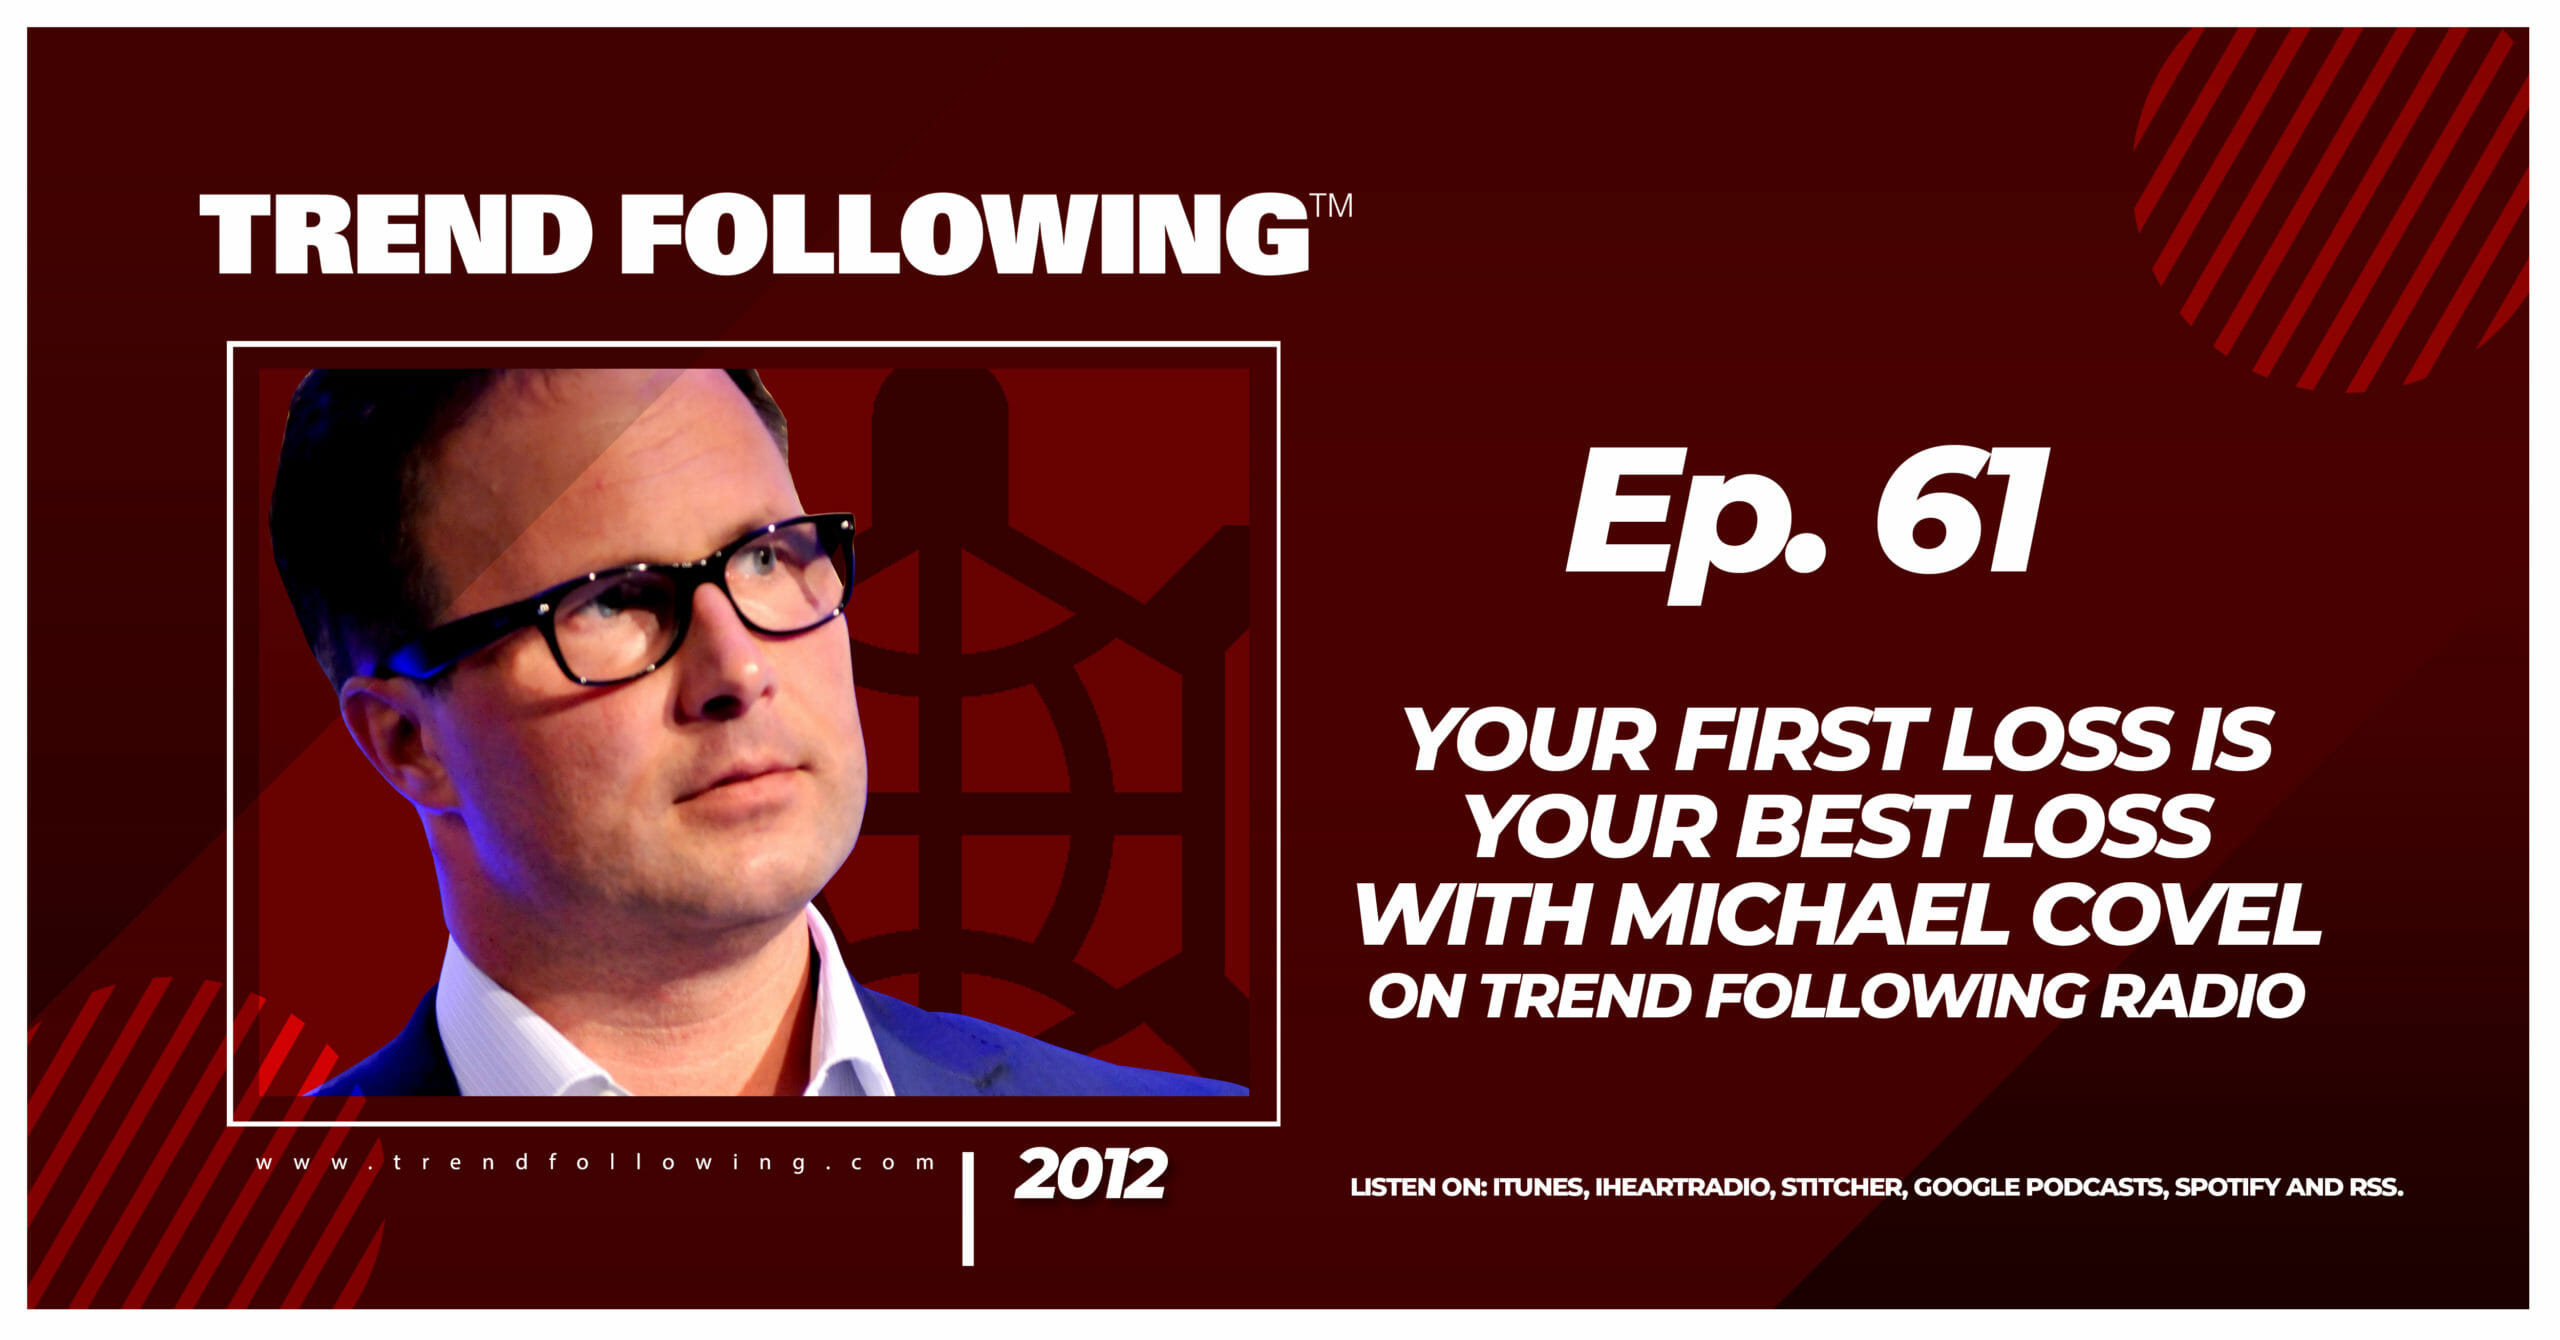 Your First Loss is Your Best Loss with Michael Covel on Trend Following Radio